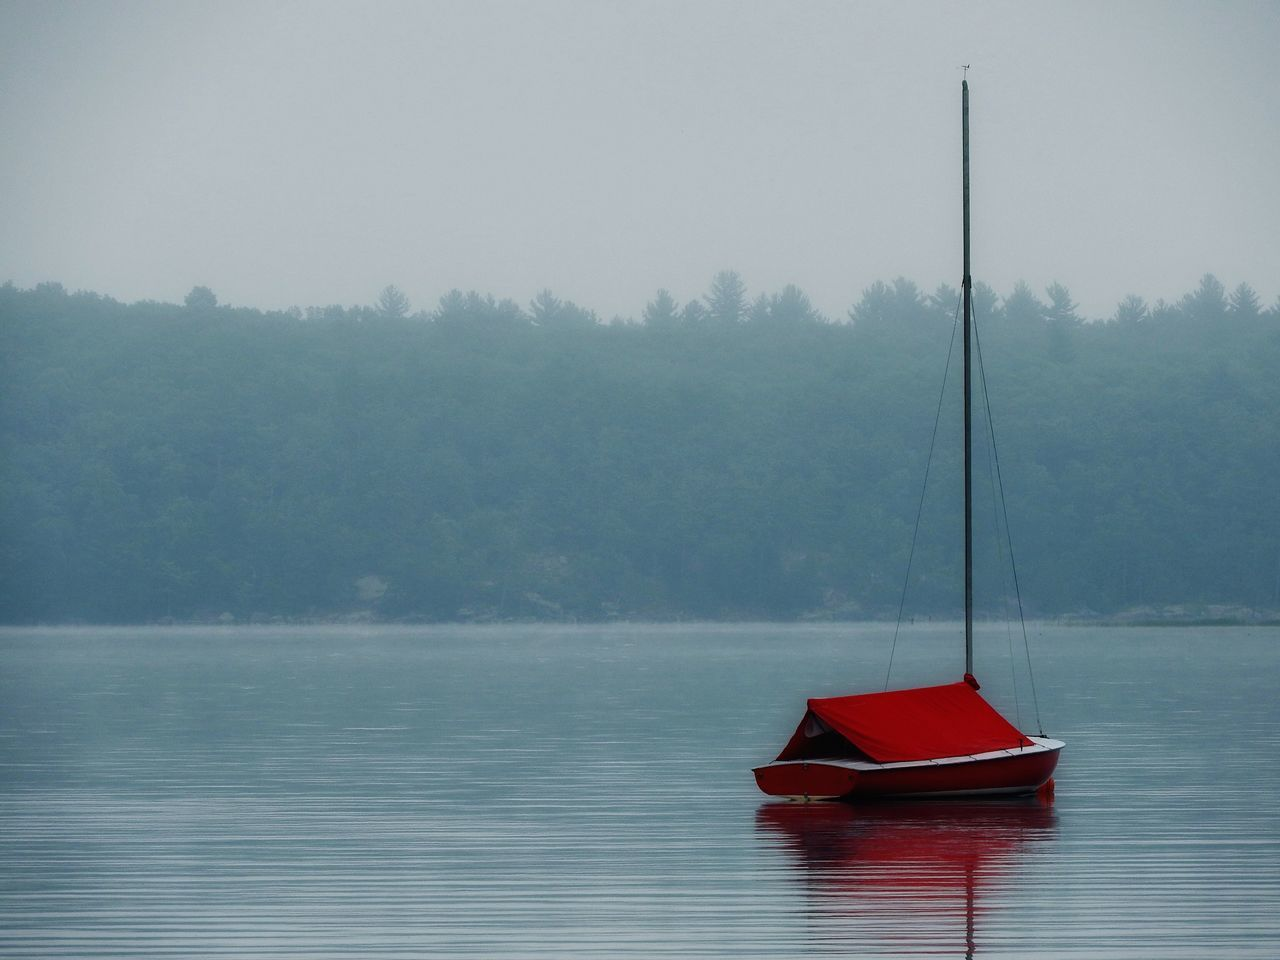 nautical vessel, water, lake, boat, tranquility, nature, outdoors, fog, no people, tranquil scene, tree, transportation, day, waterfront, moored, scenics, red, floating on water, beauty in nature, sky, oar